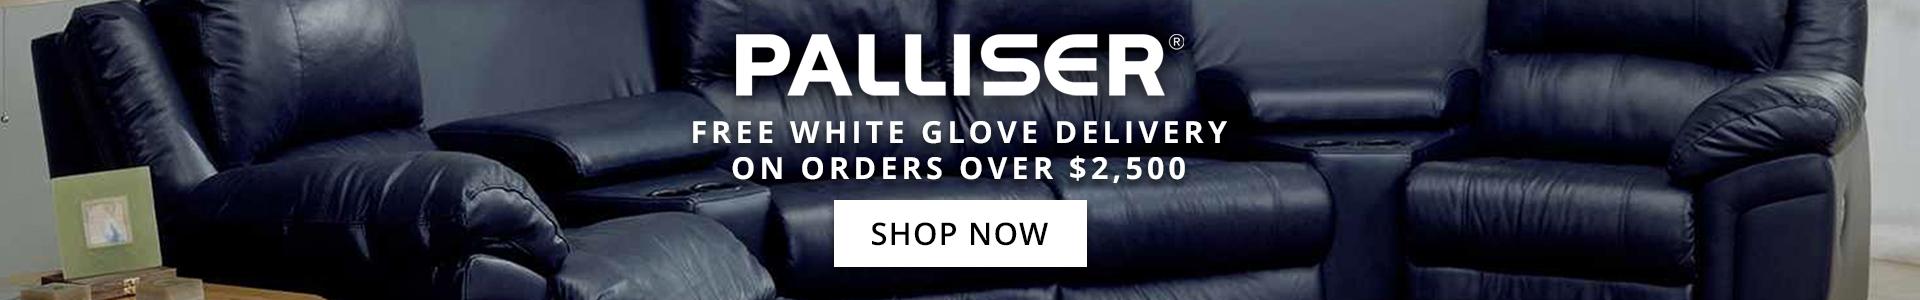 Cyber Monday Palliser Sale